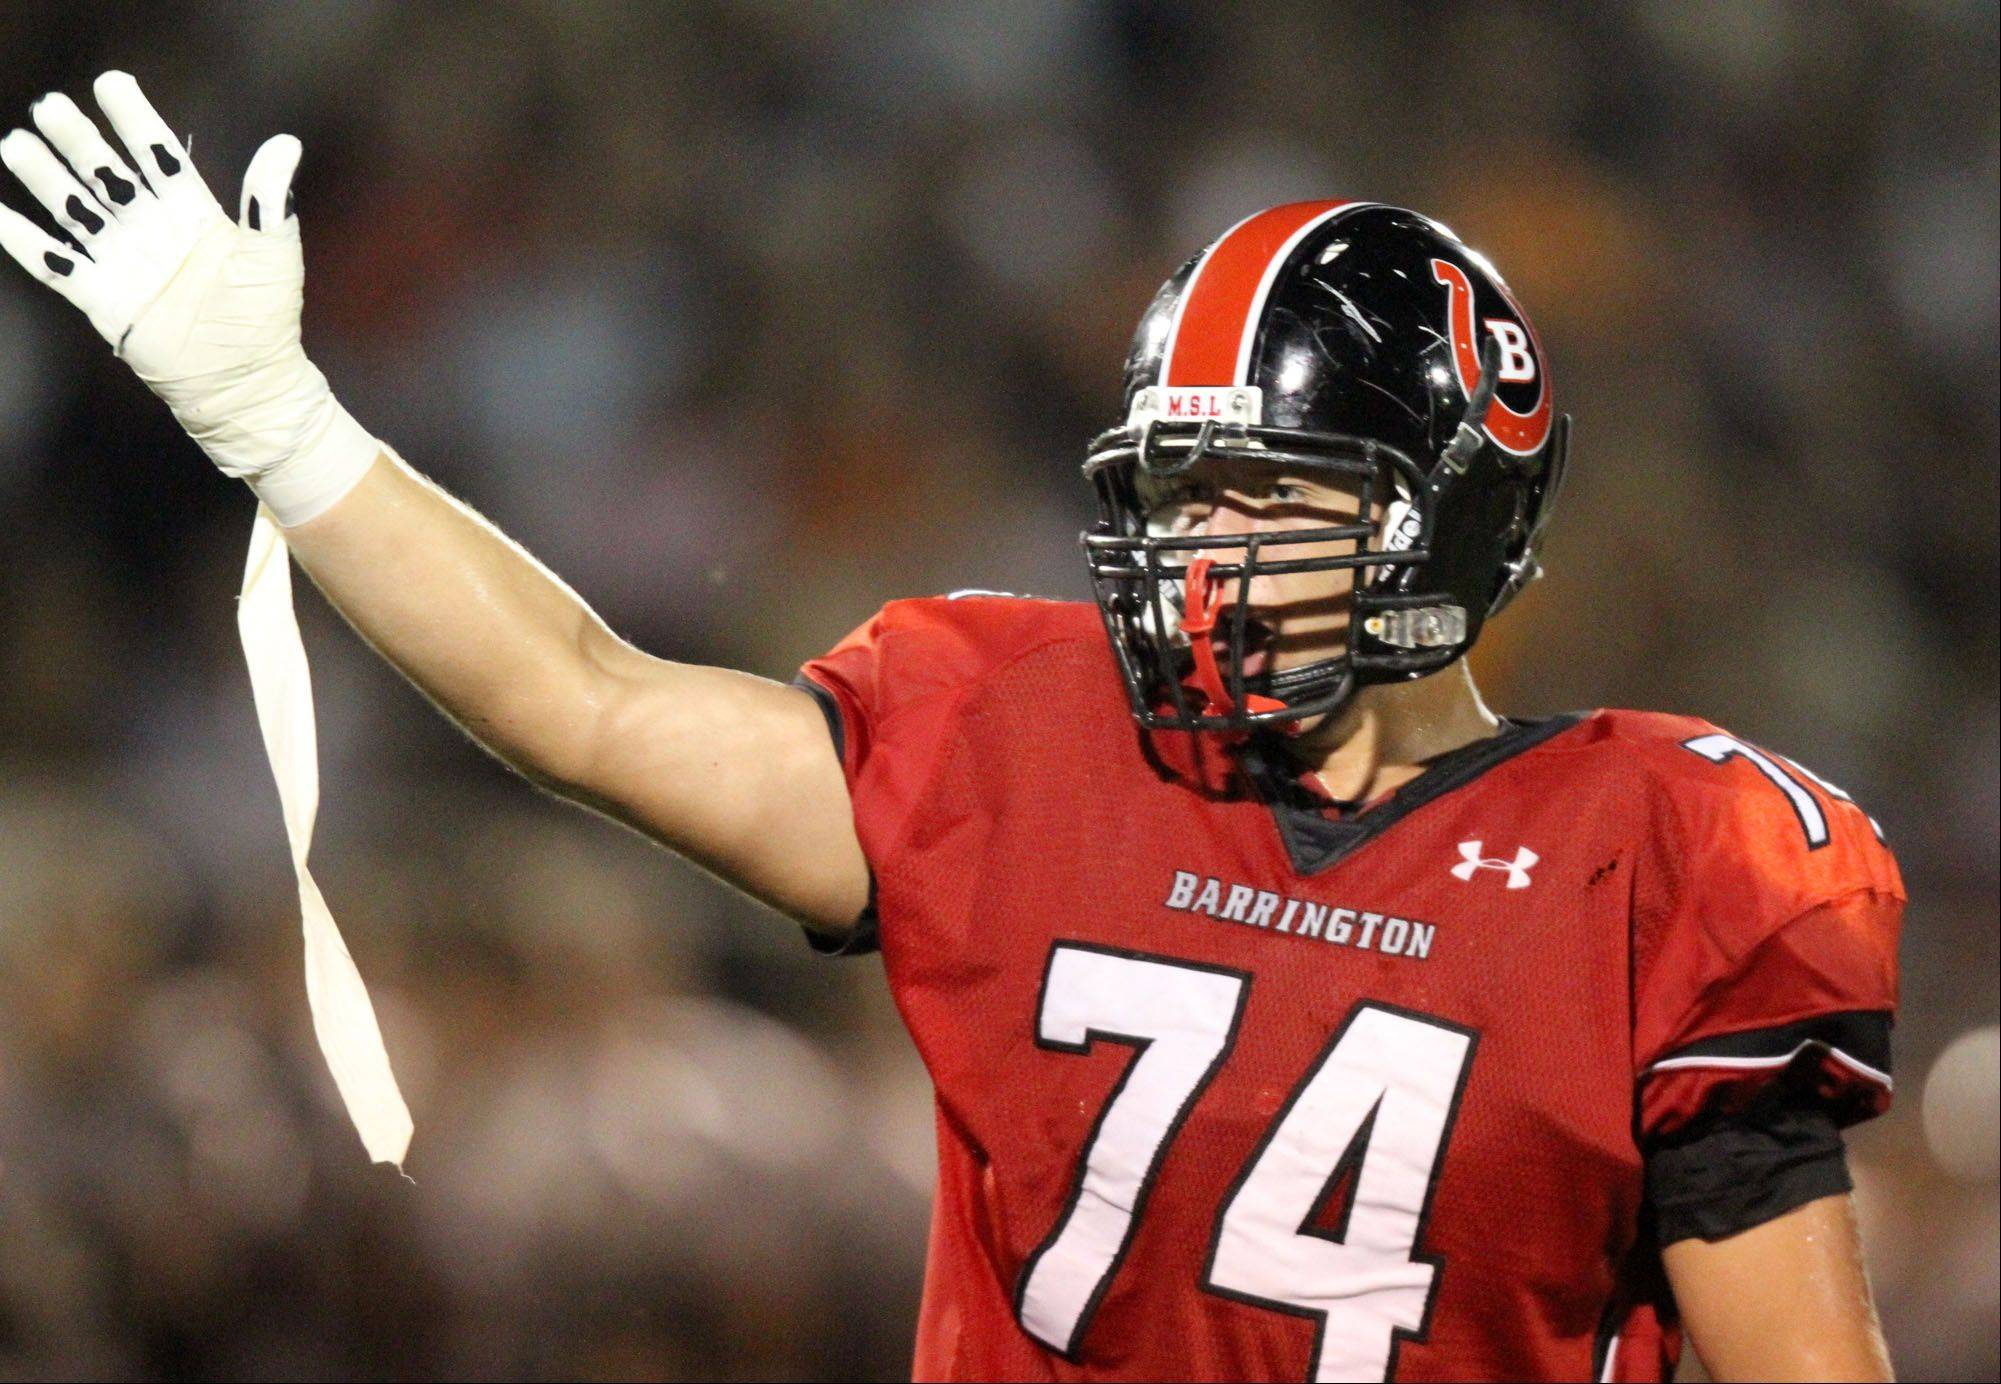 Barrington lineman Mason Darrow is pointed toward a football future at Princeton.